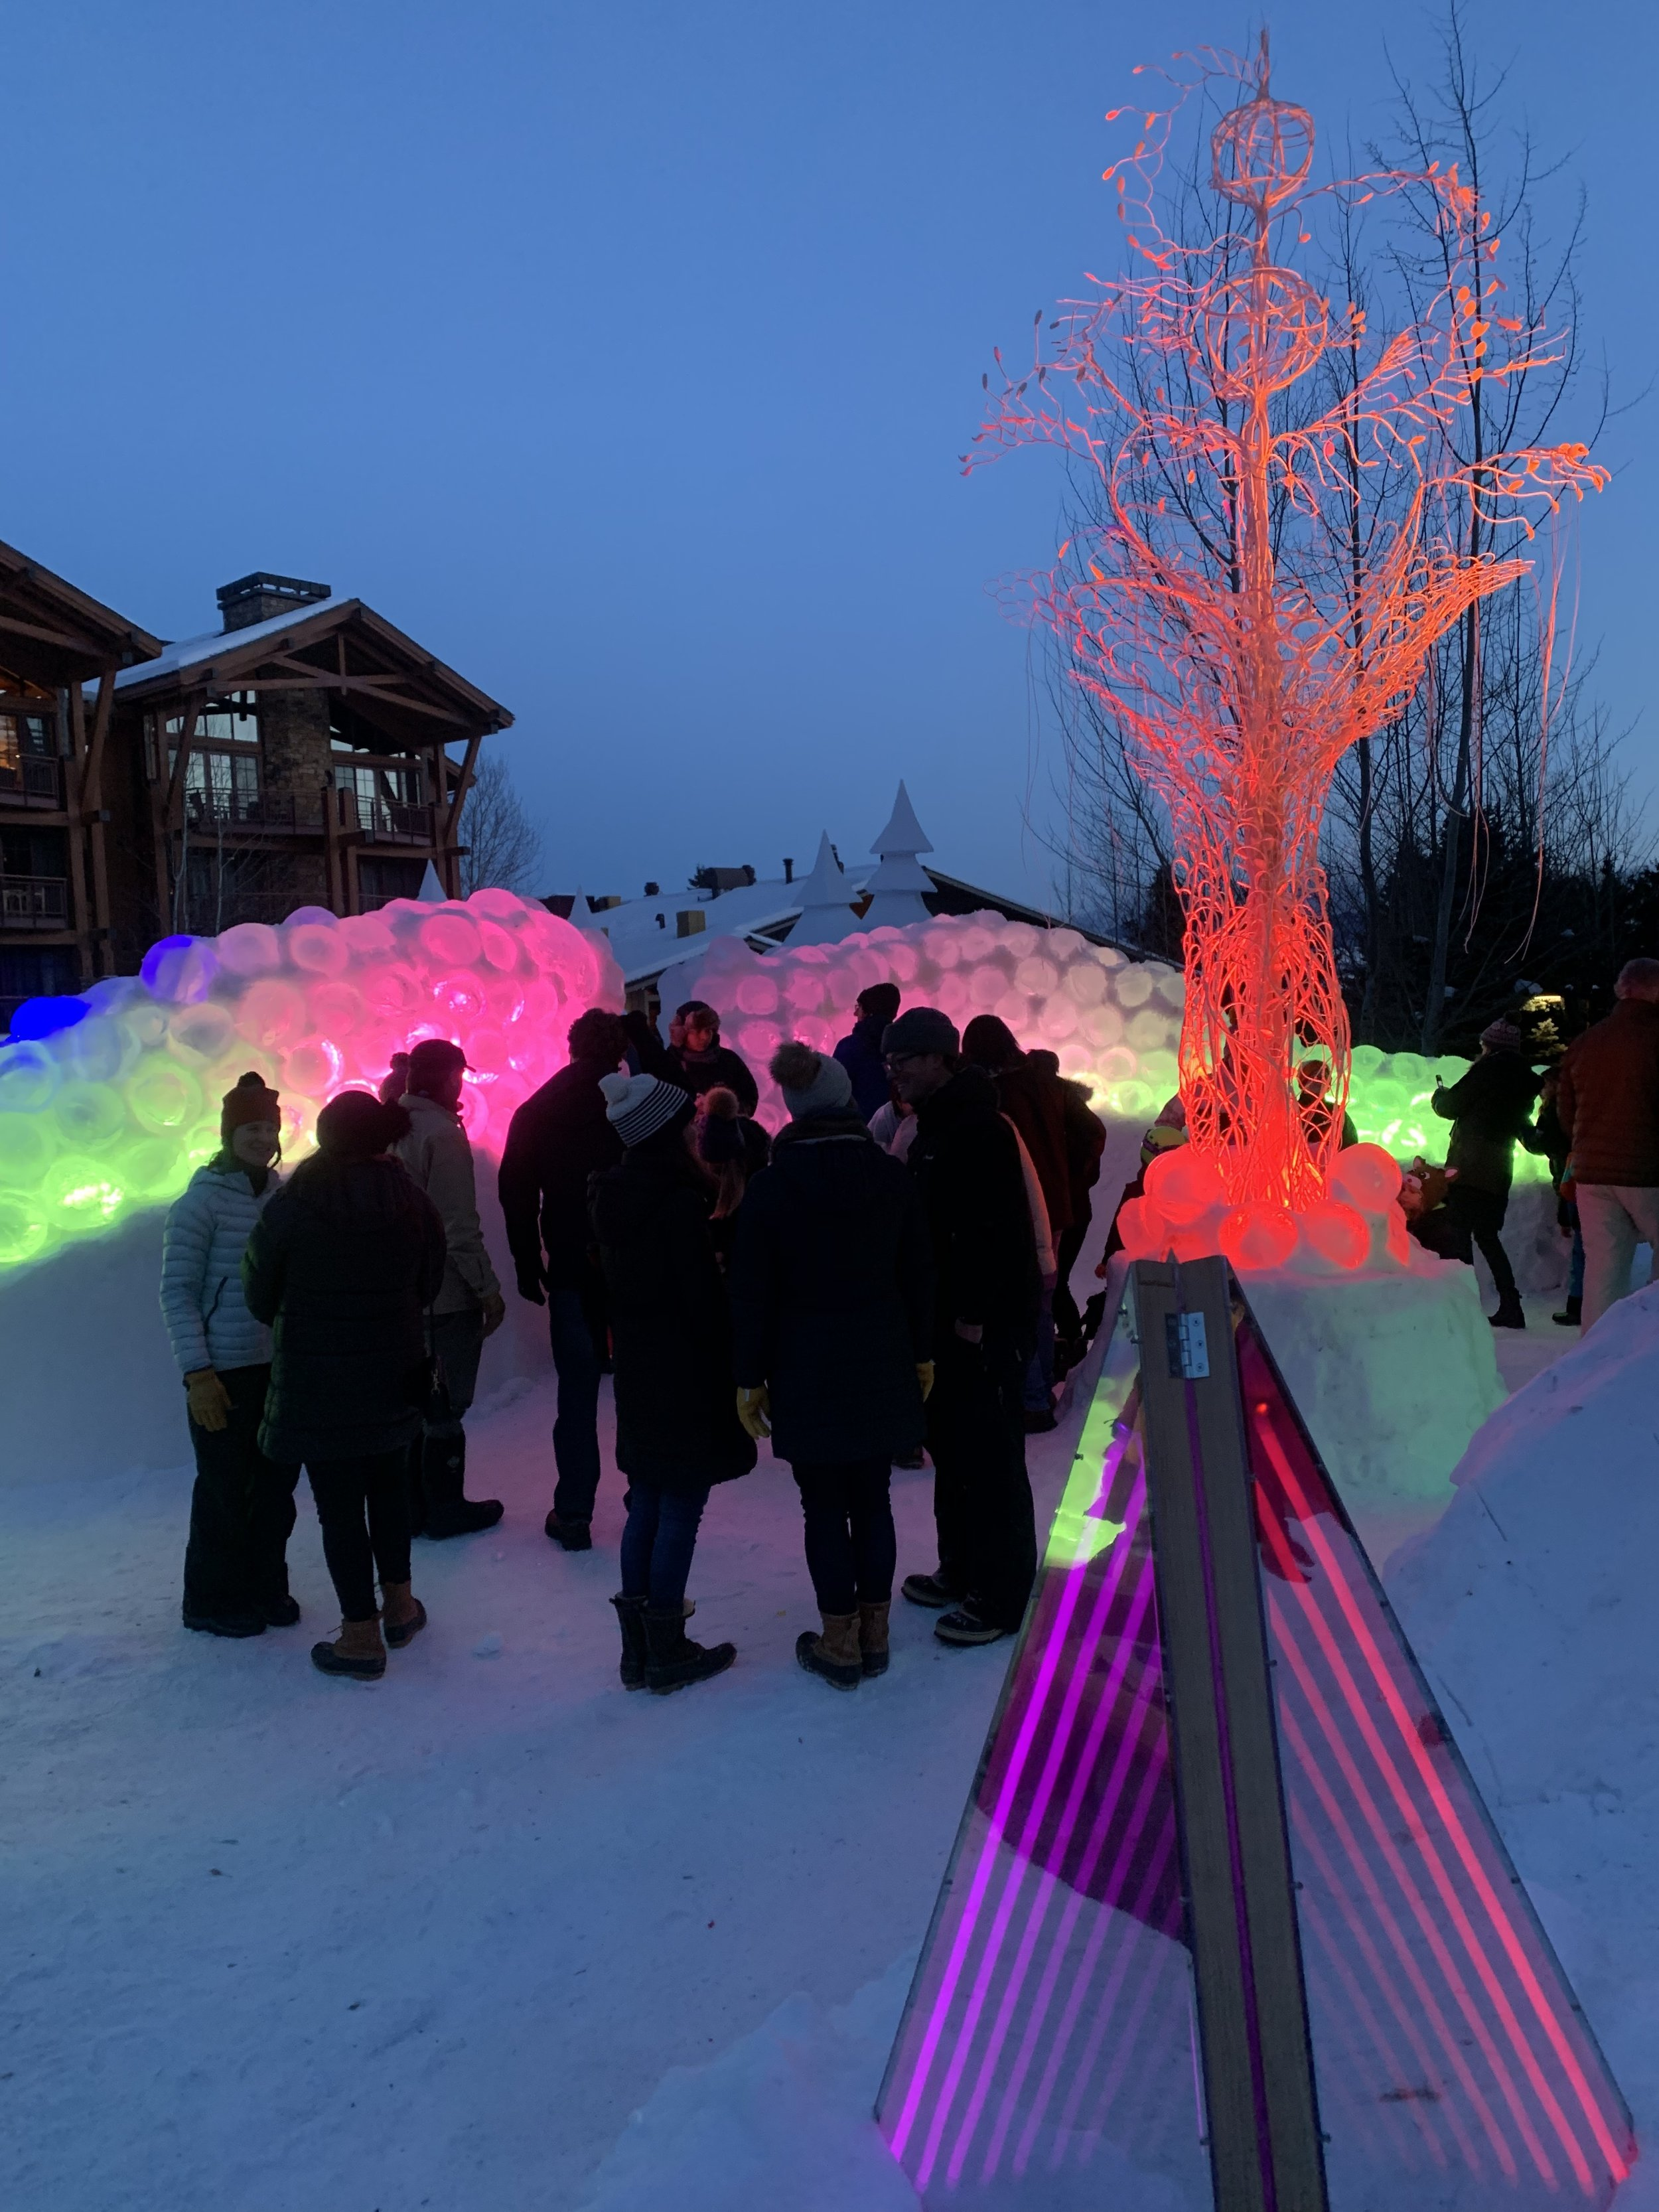 Jackson Hole, Wyoming.  Glow Nights Festival  December 2018.  Artist : Claudia Bueno, Bland Hoke, Walter Gerald  Steel, LED Light and Fiber Optics, Snow, Ice, Slush, Wood, Acrylic